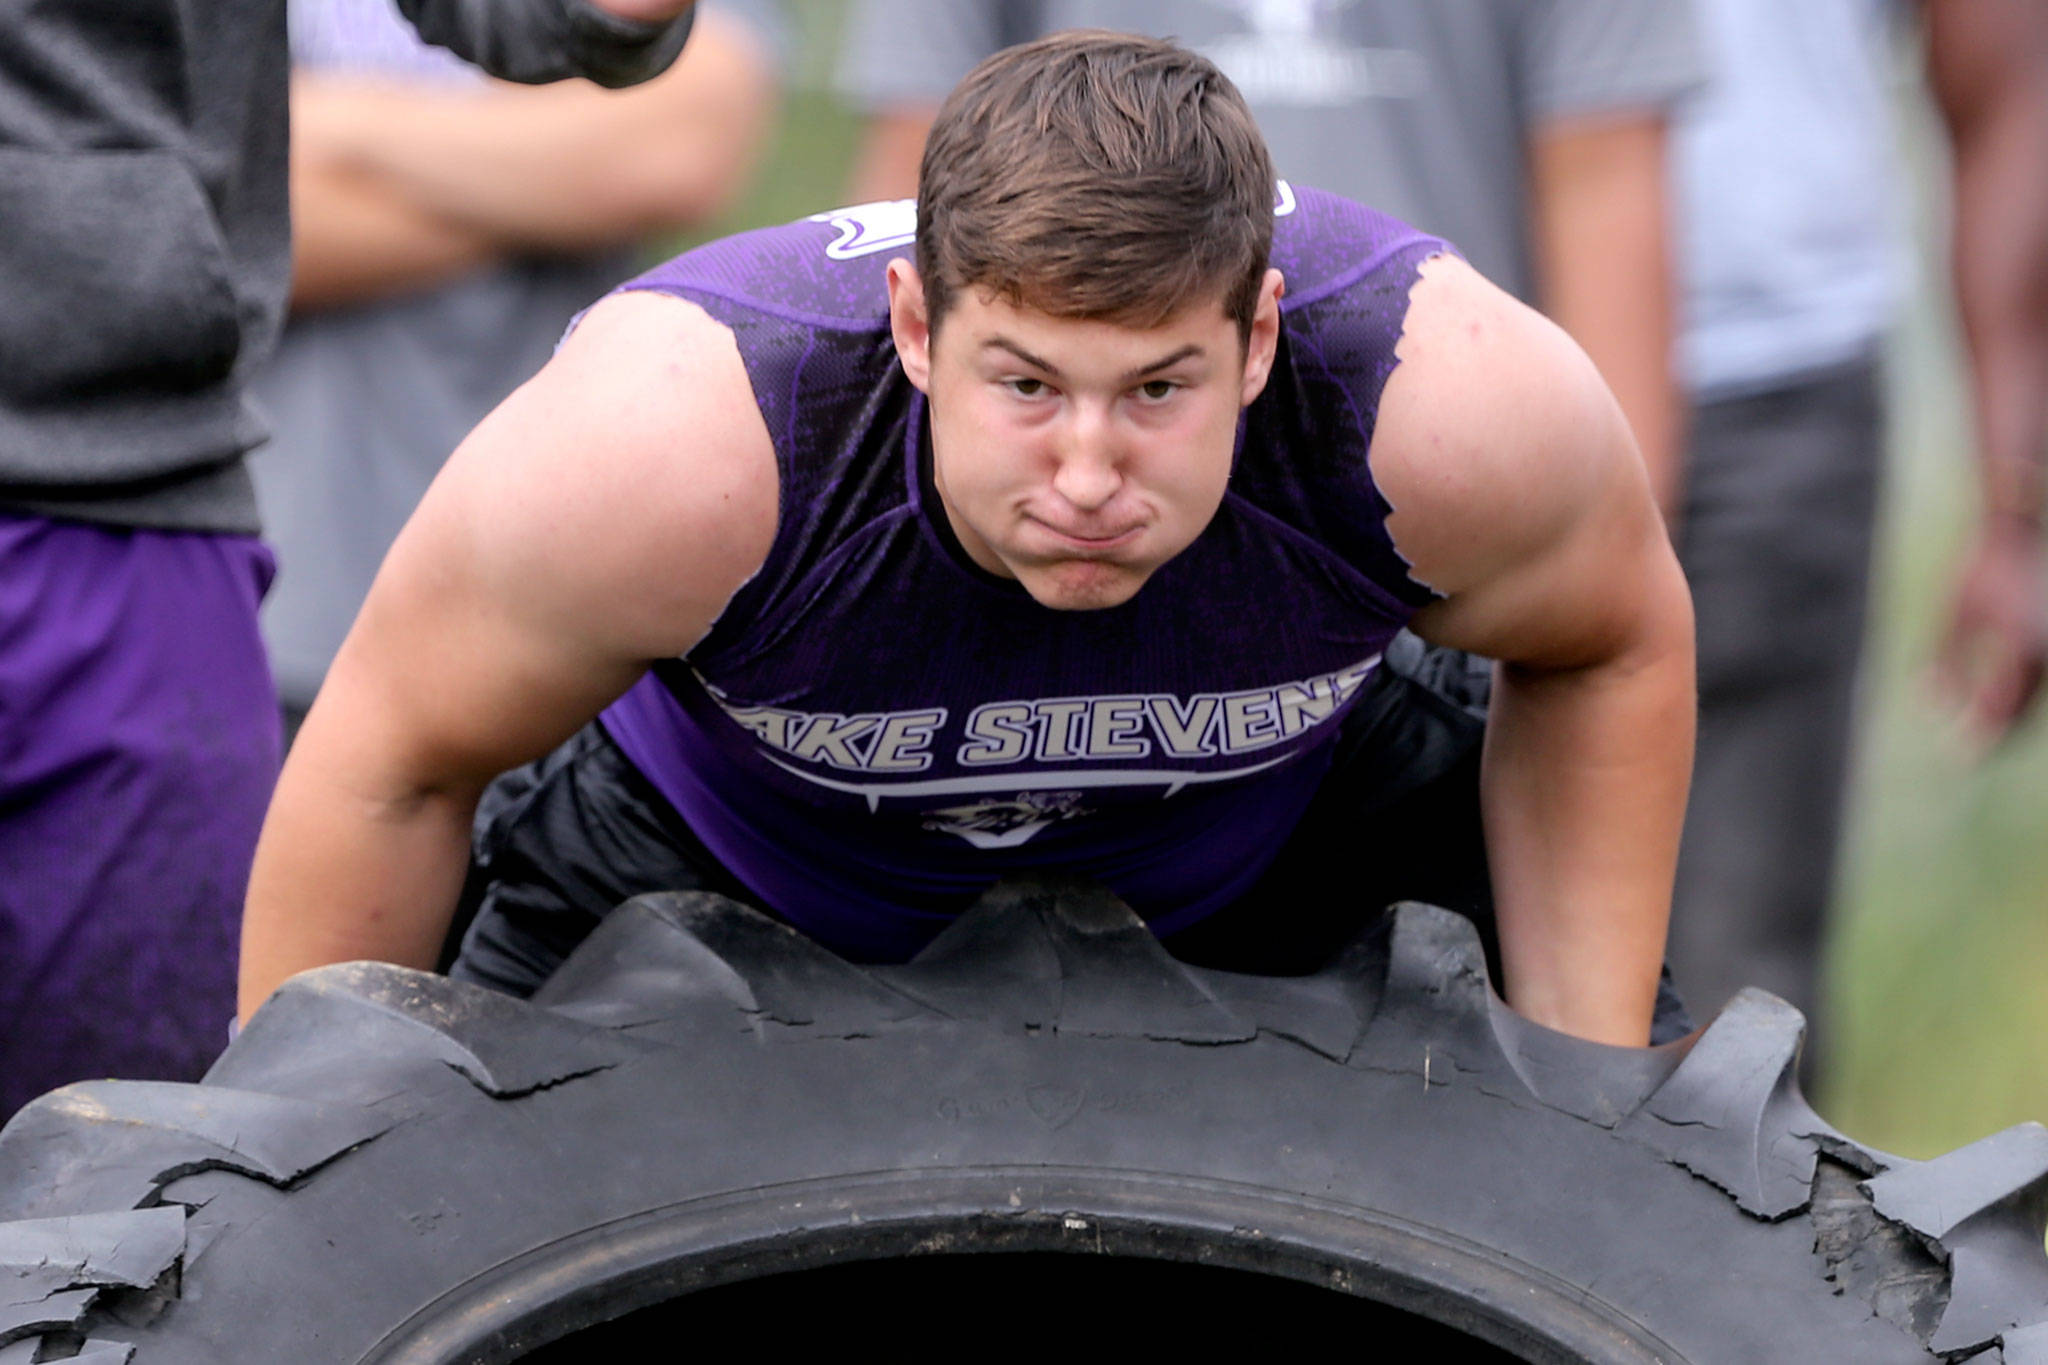 Lake Stevens' Wyatt Hall races in the tire-flip relay as part of the lineman challenge. (Kevin Clark / The Herald)